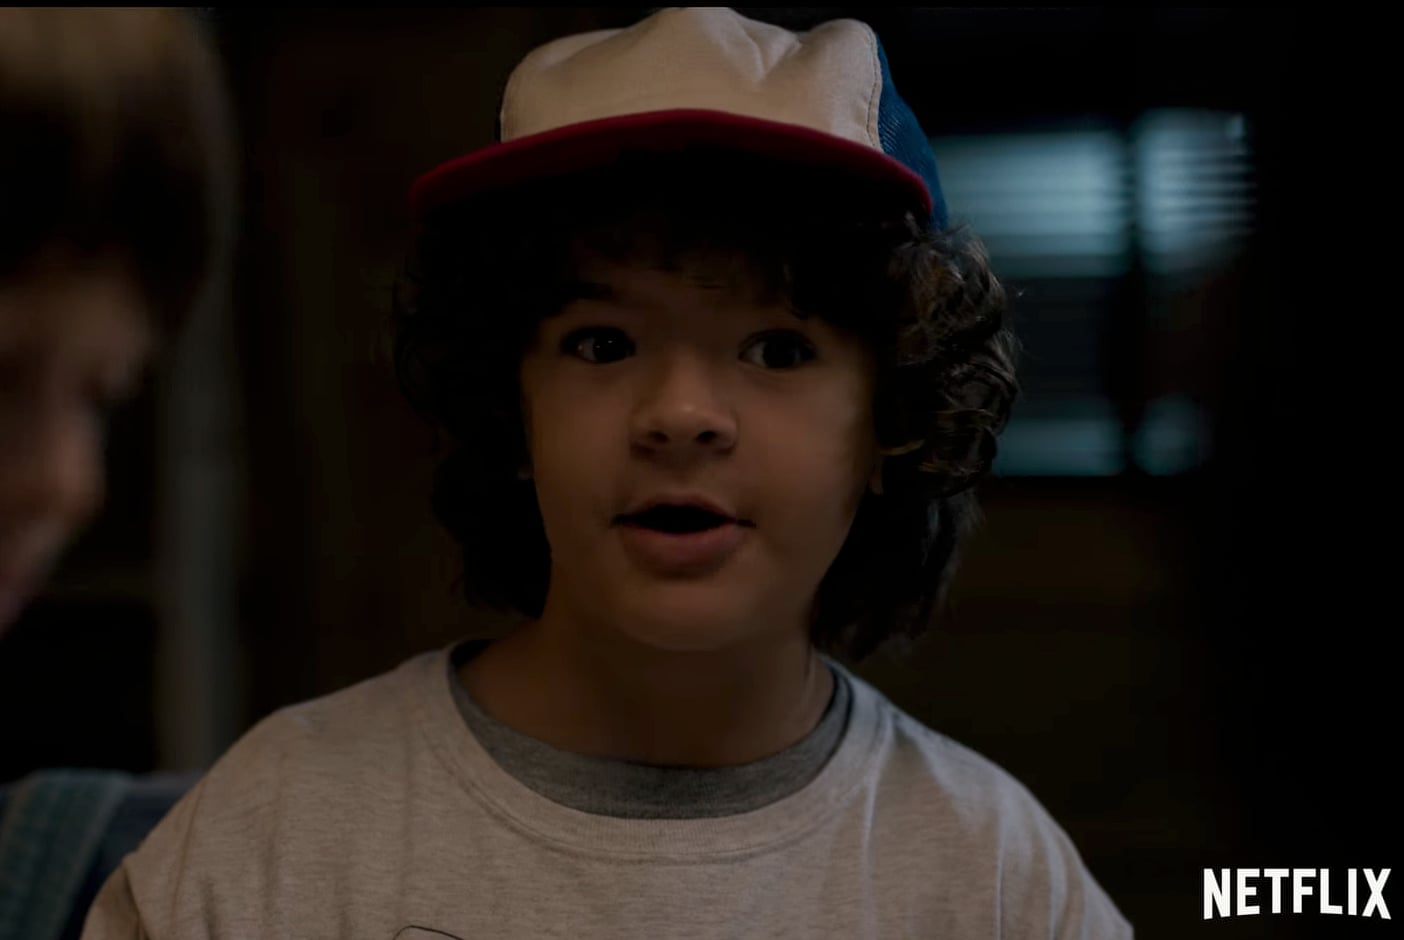 netflix-casts-a-great-group-of-young-actors-but-stranger-things-have-happened-gaten-ma-1063261